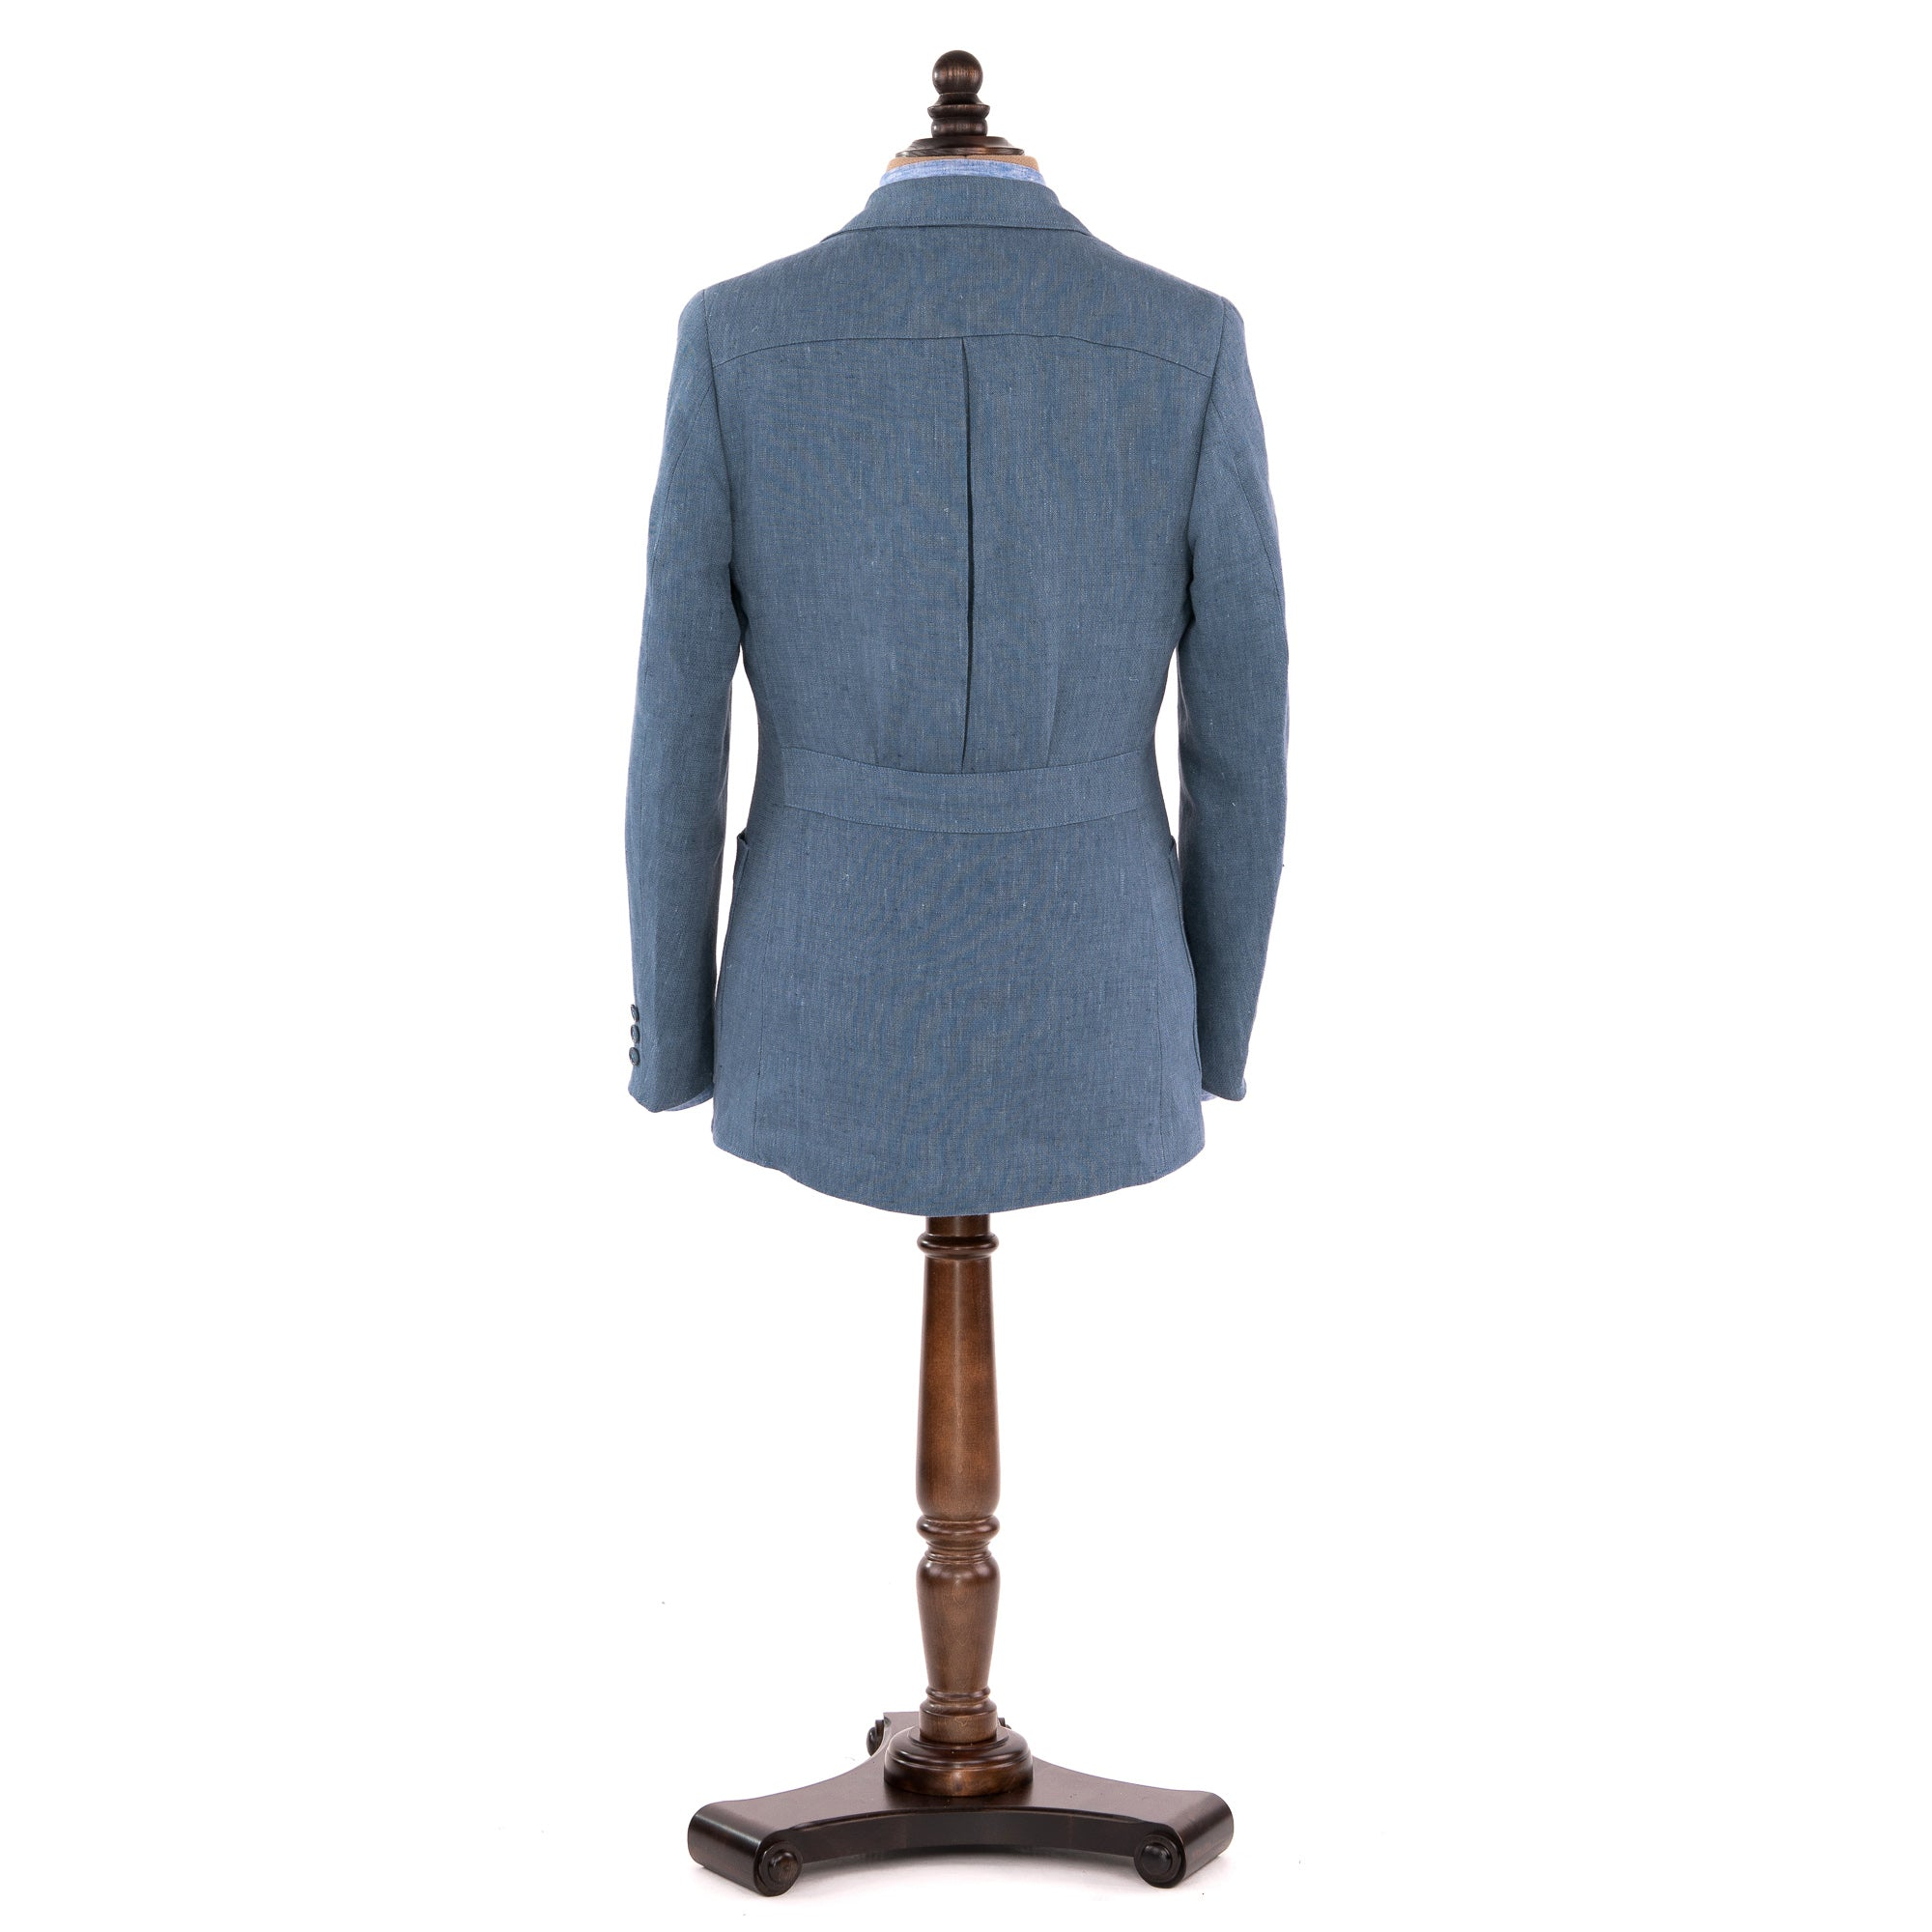 Supermarine Blue King Cole Jacket